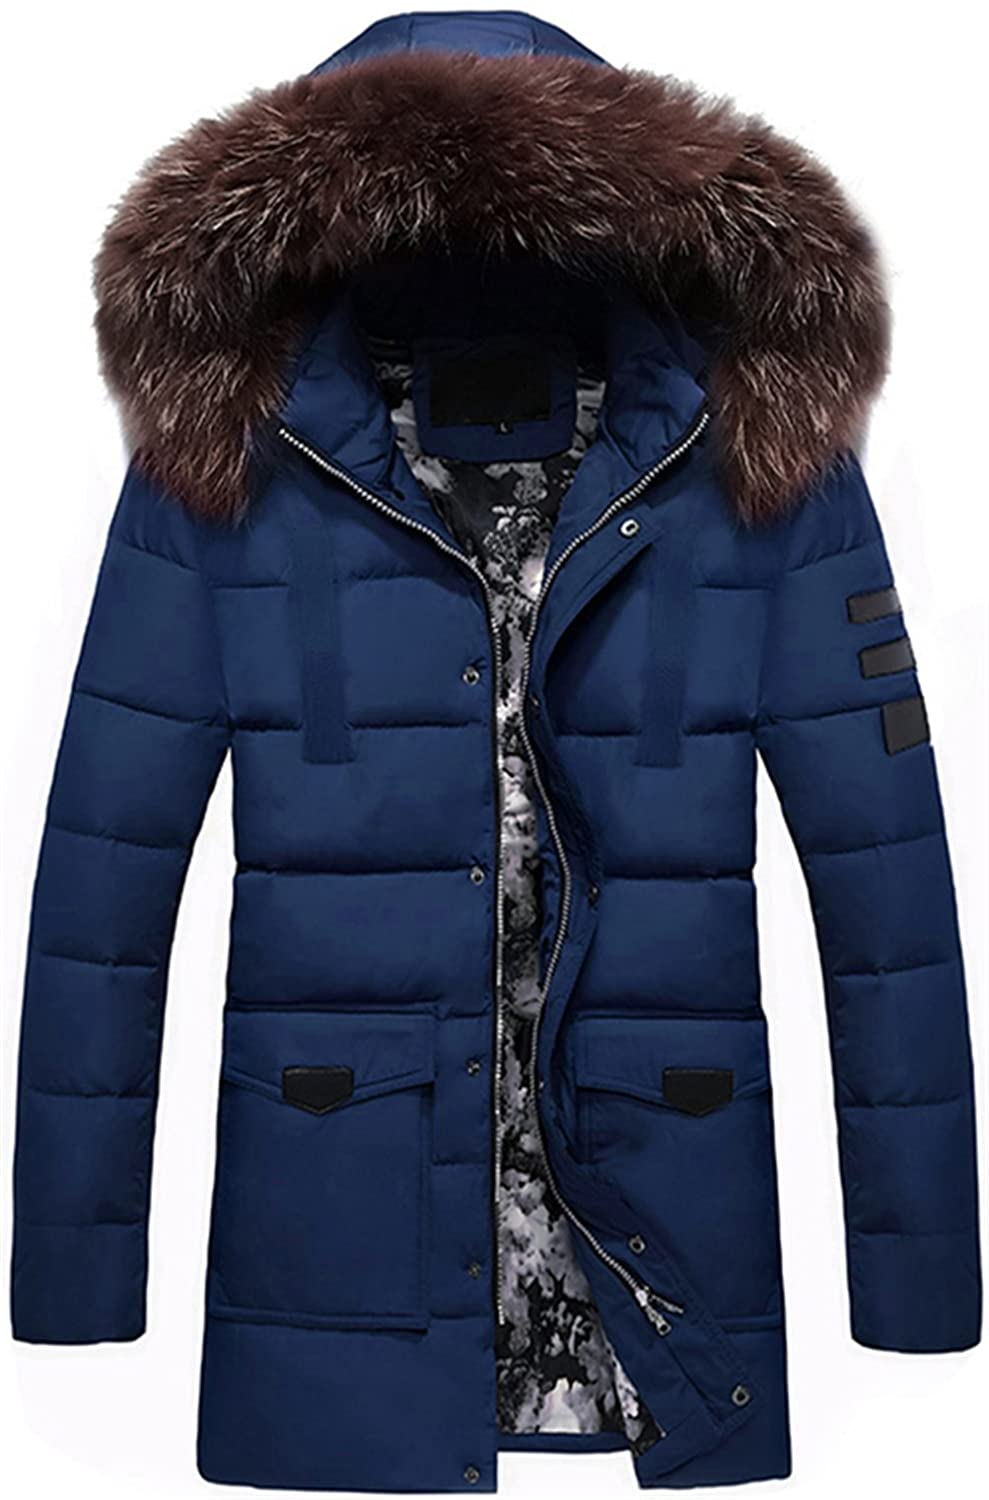 K3K Men's Winter Down Cotton Coat Fur Collar Hooded Quilted Parka Puffer Jacket